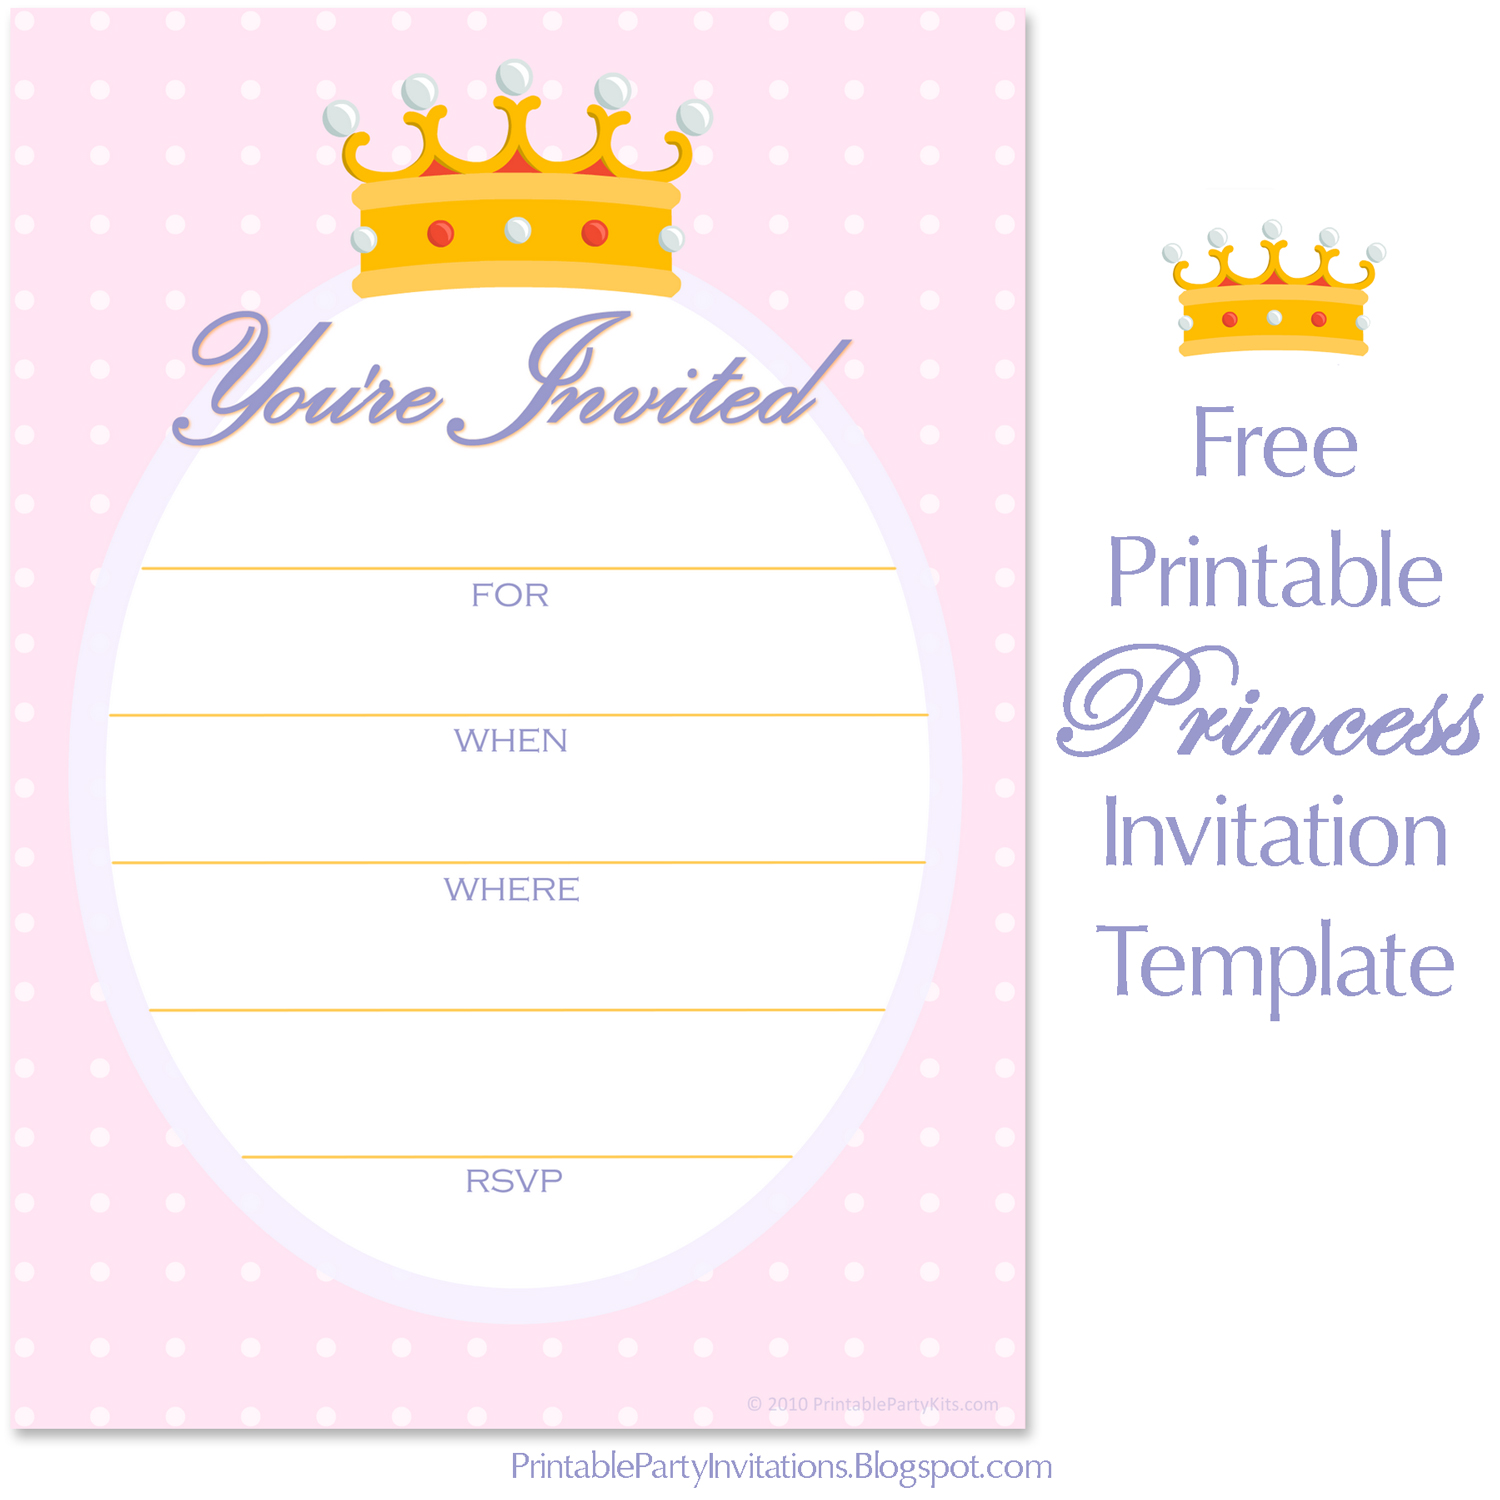 Free Printable Party Invitations Free Invitations For A Princess Birthday Party